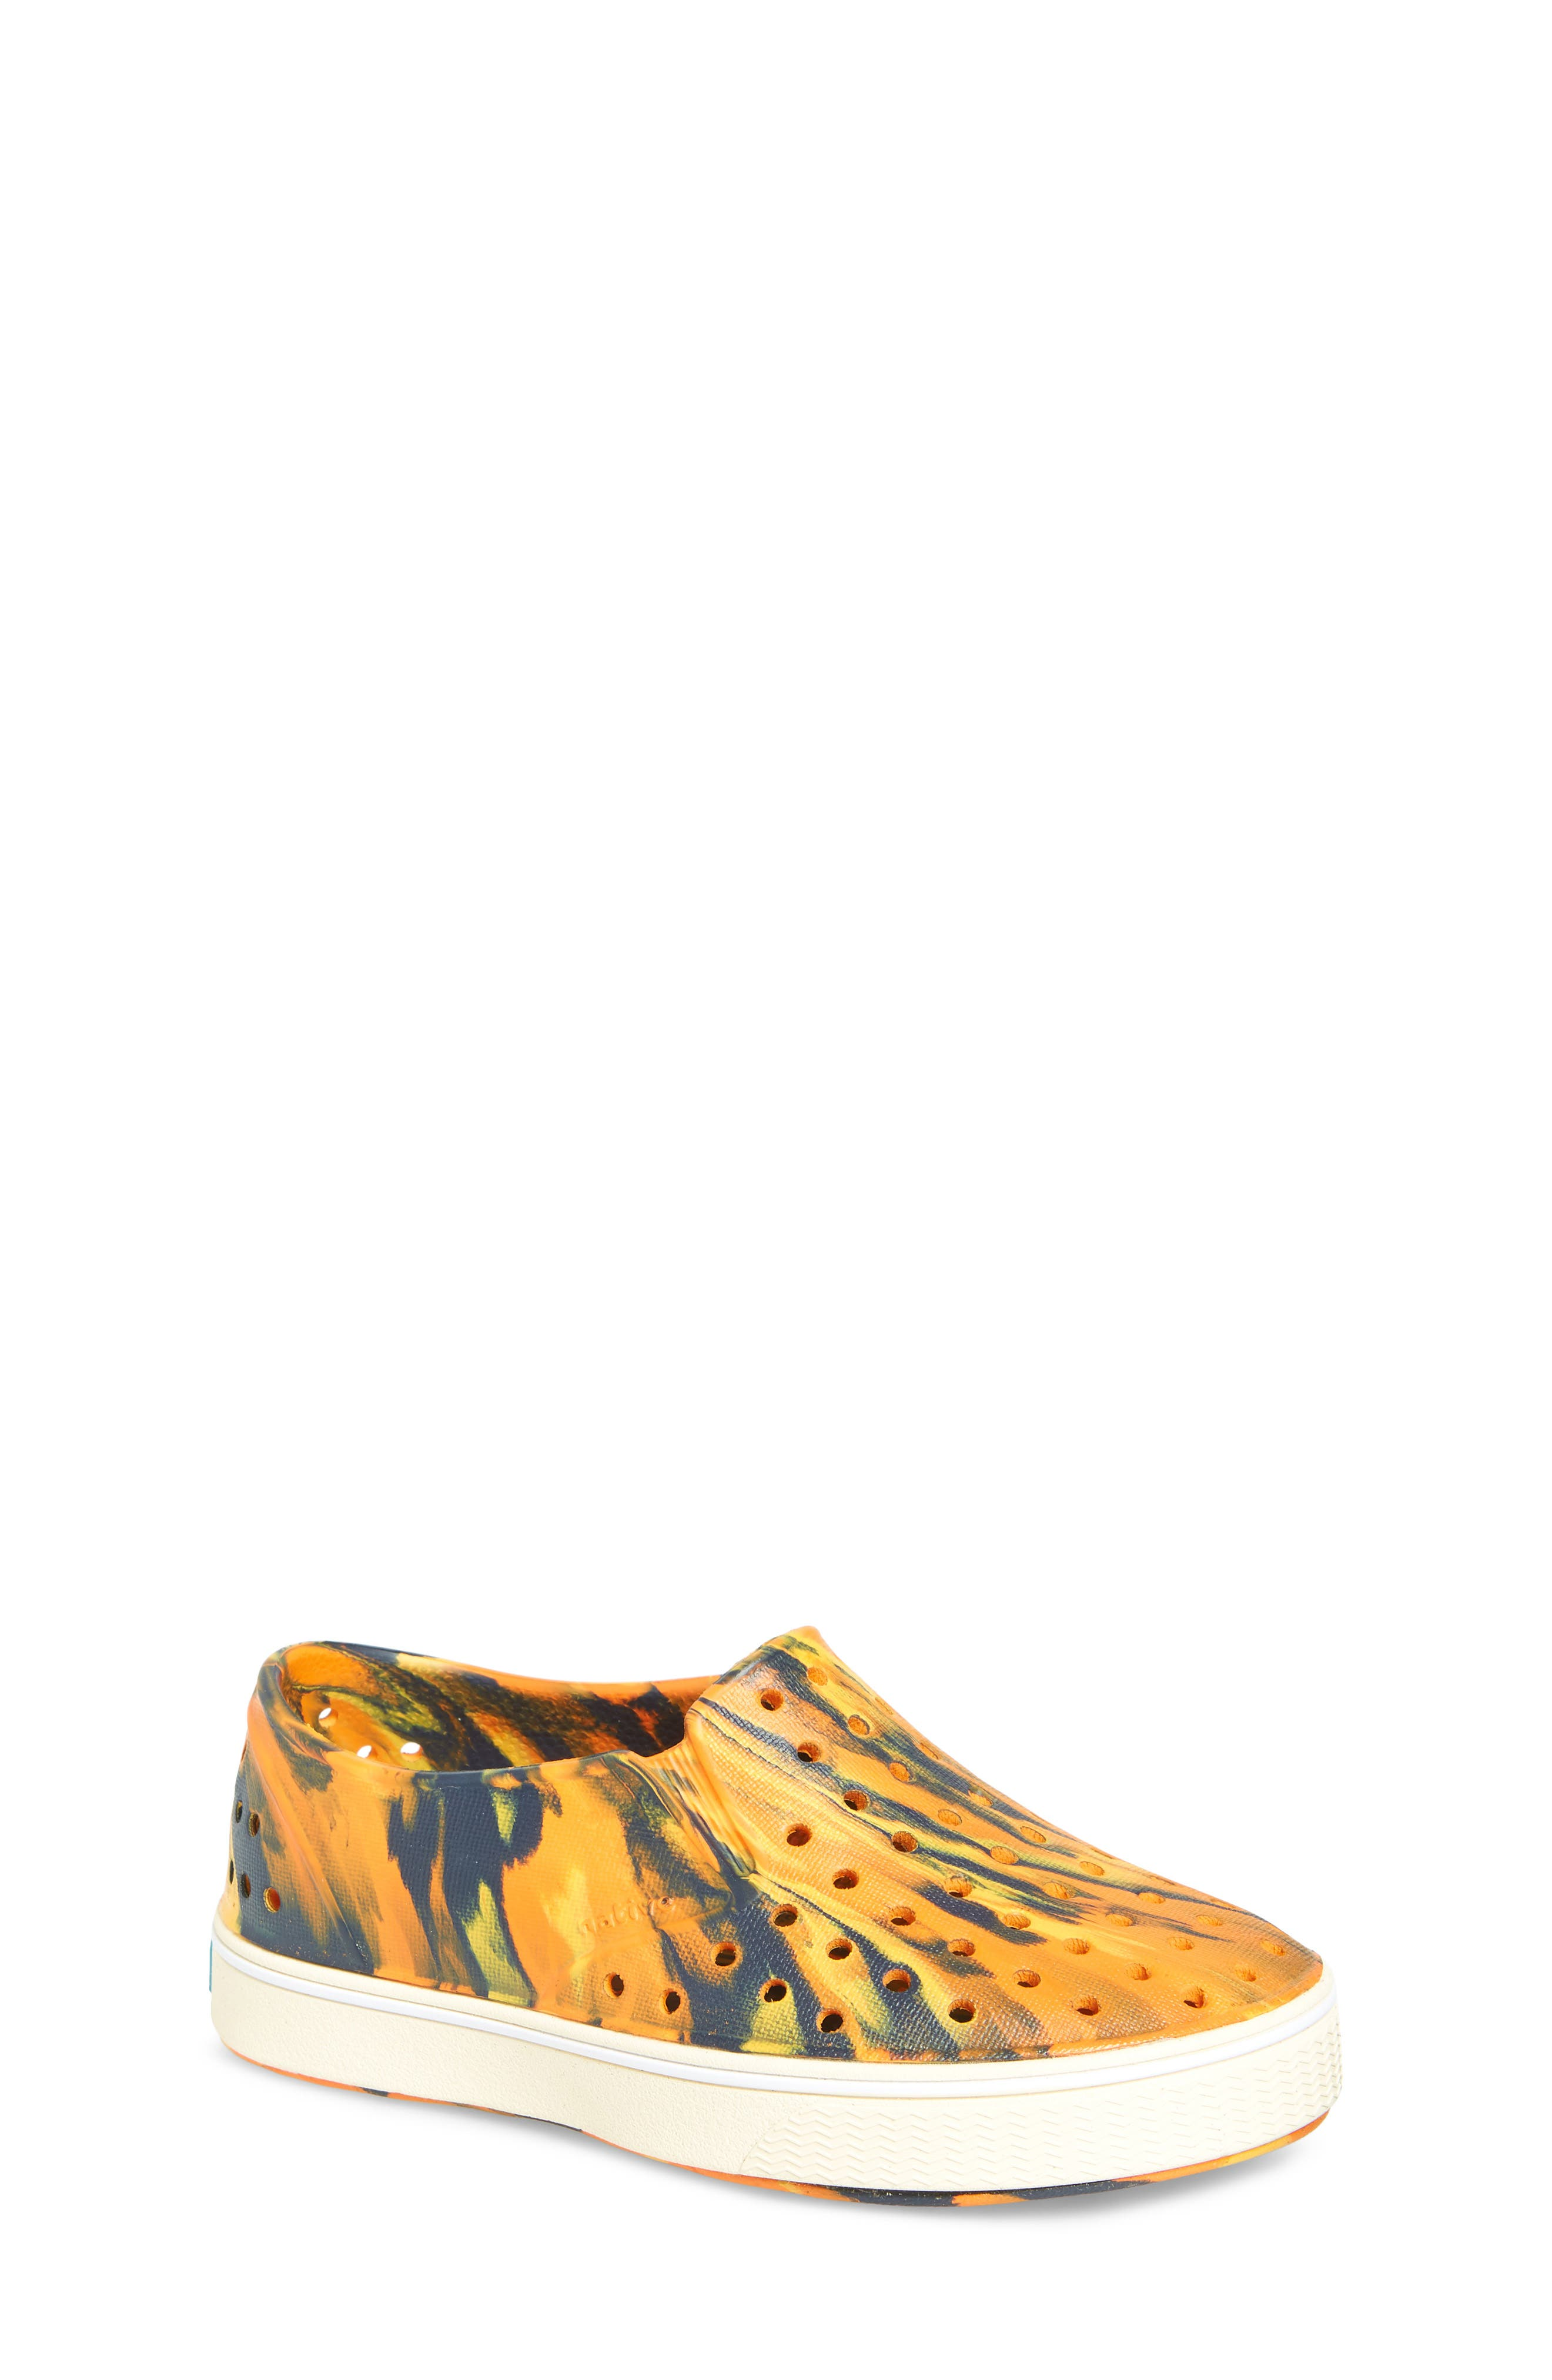 Alternate Image 1 Selected - Native Shoes Miles Marbled Slip-On Sneaker (Baby, Walker, Toddler & Little Kid)